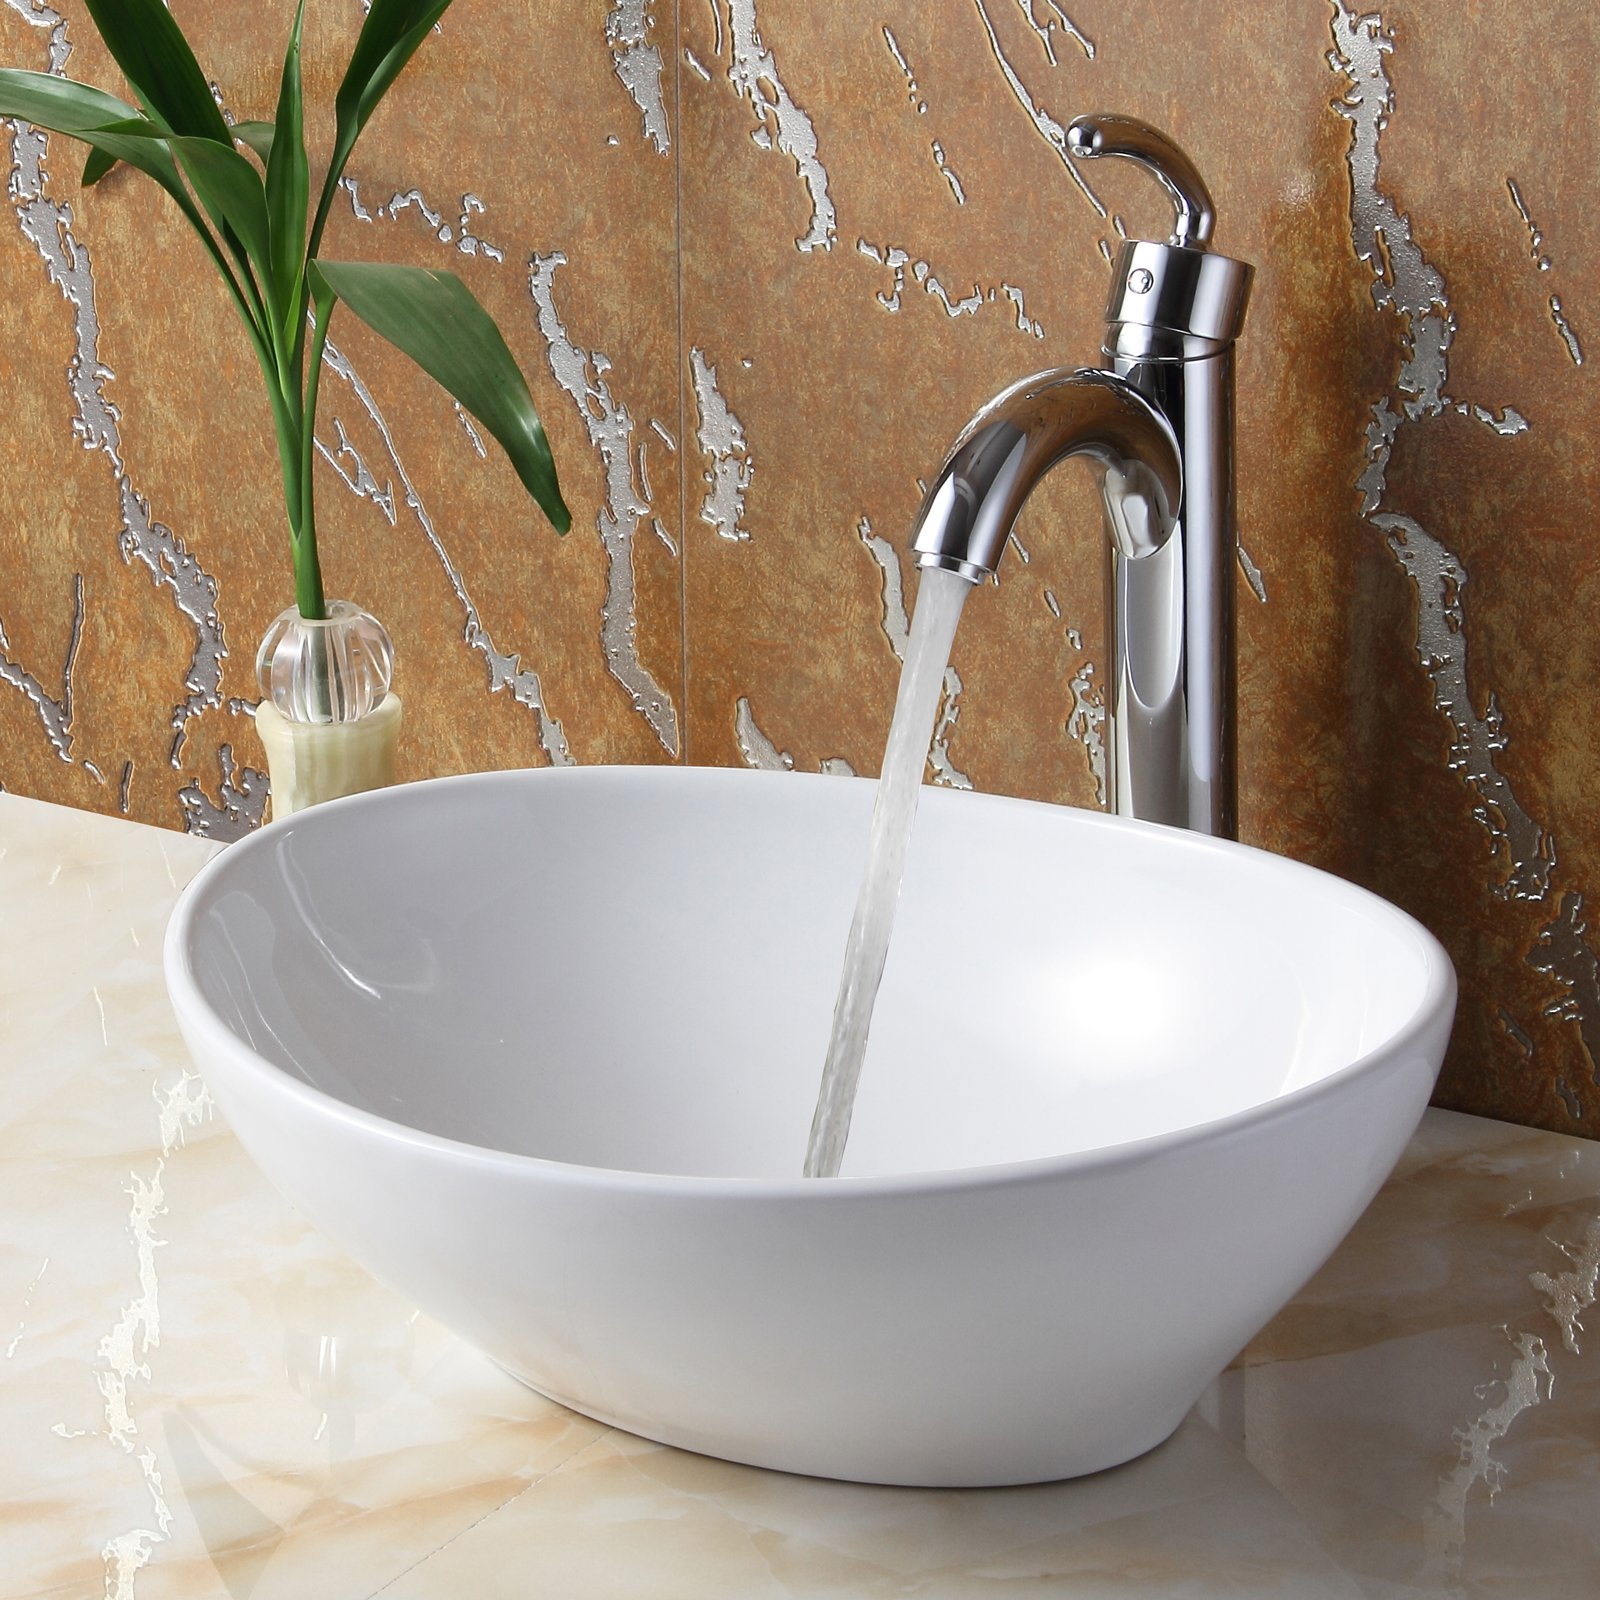 ELITE Bathroom Egg White Ceramic Porcelain Vessel Sink & Chrome Single Lever Faucet by ELITE